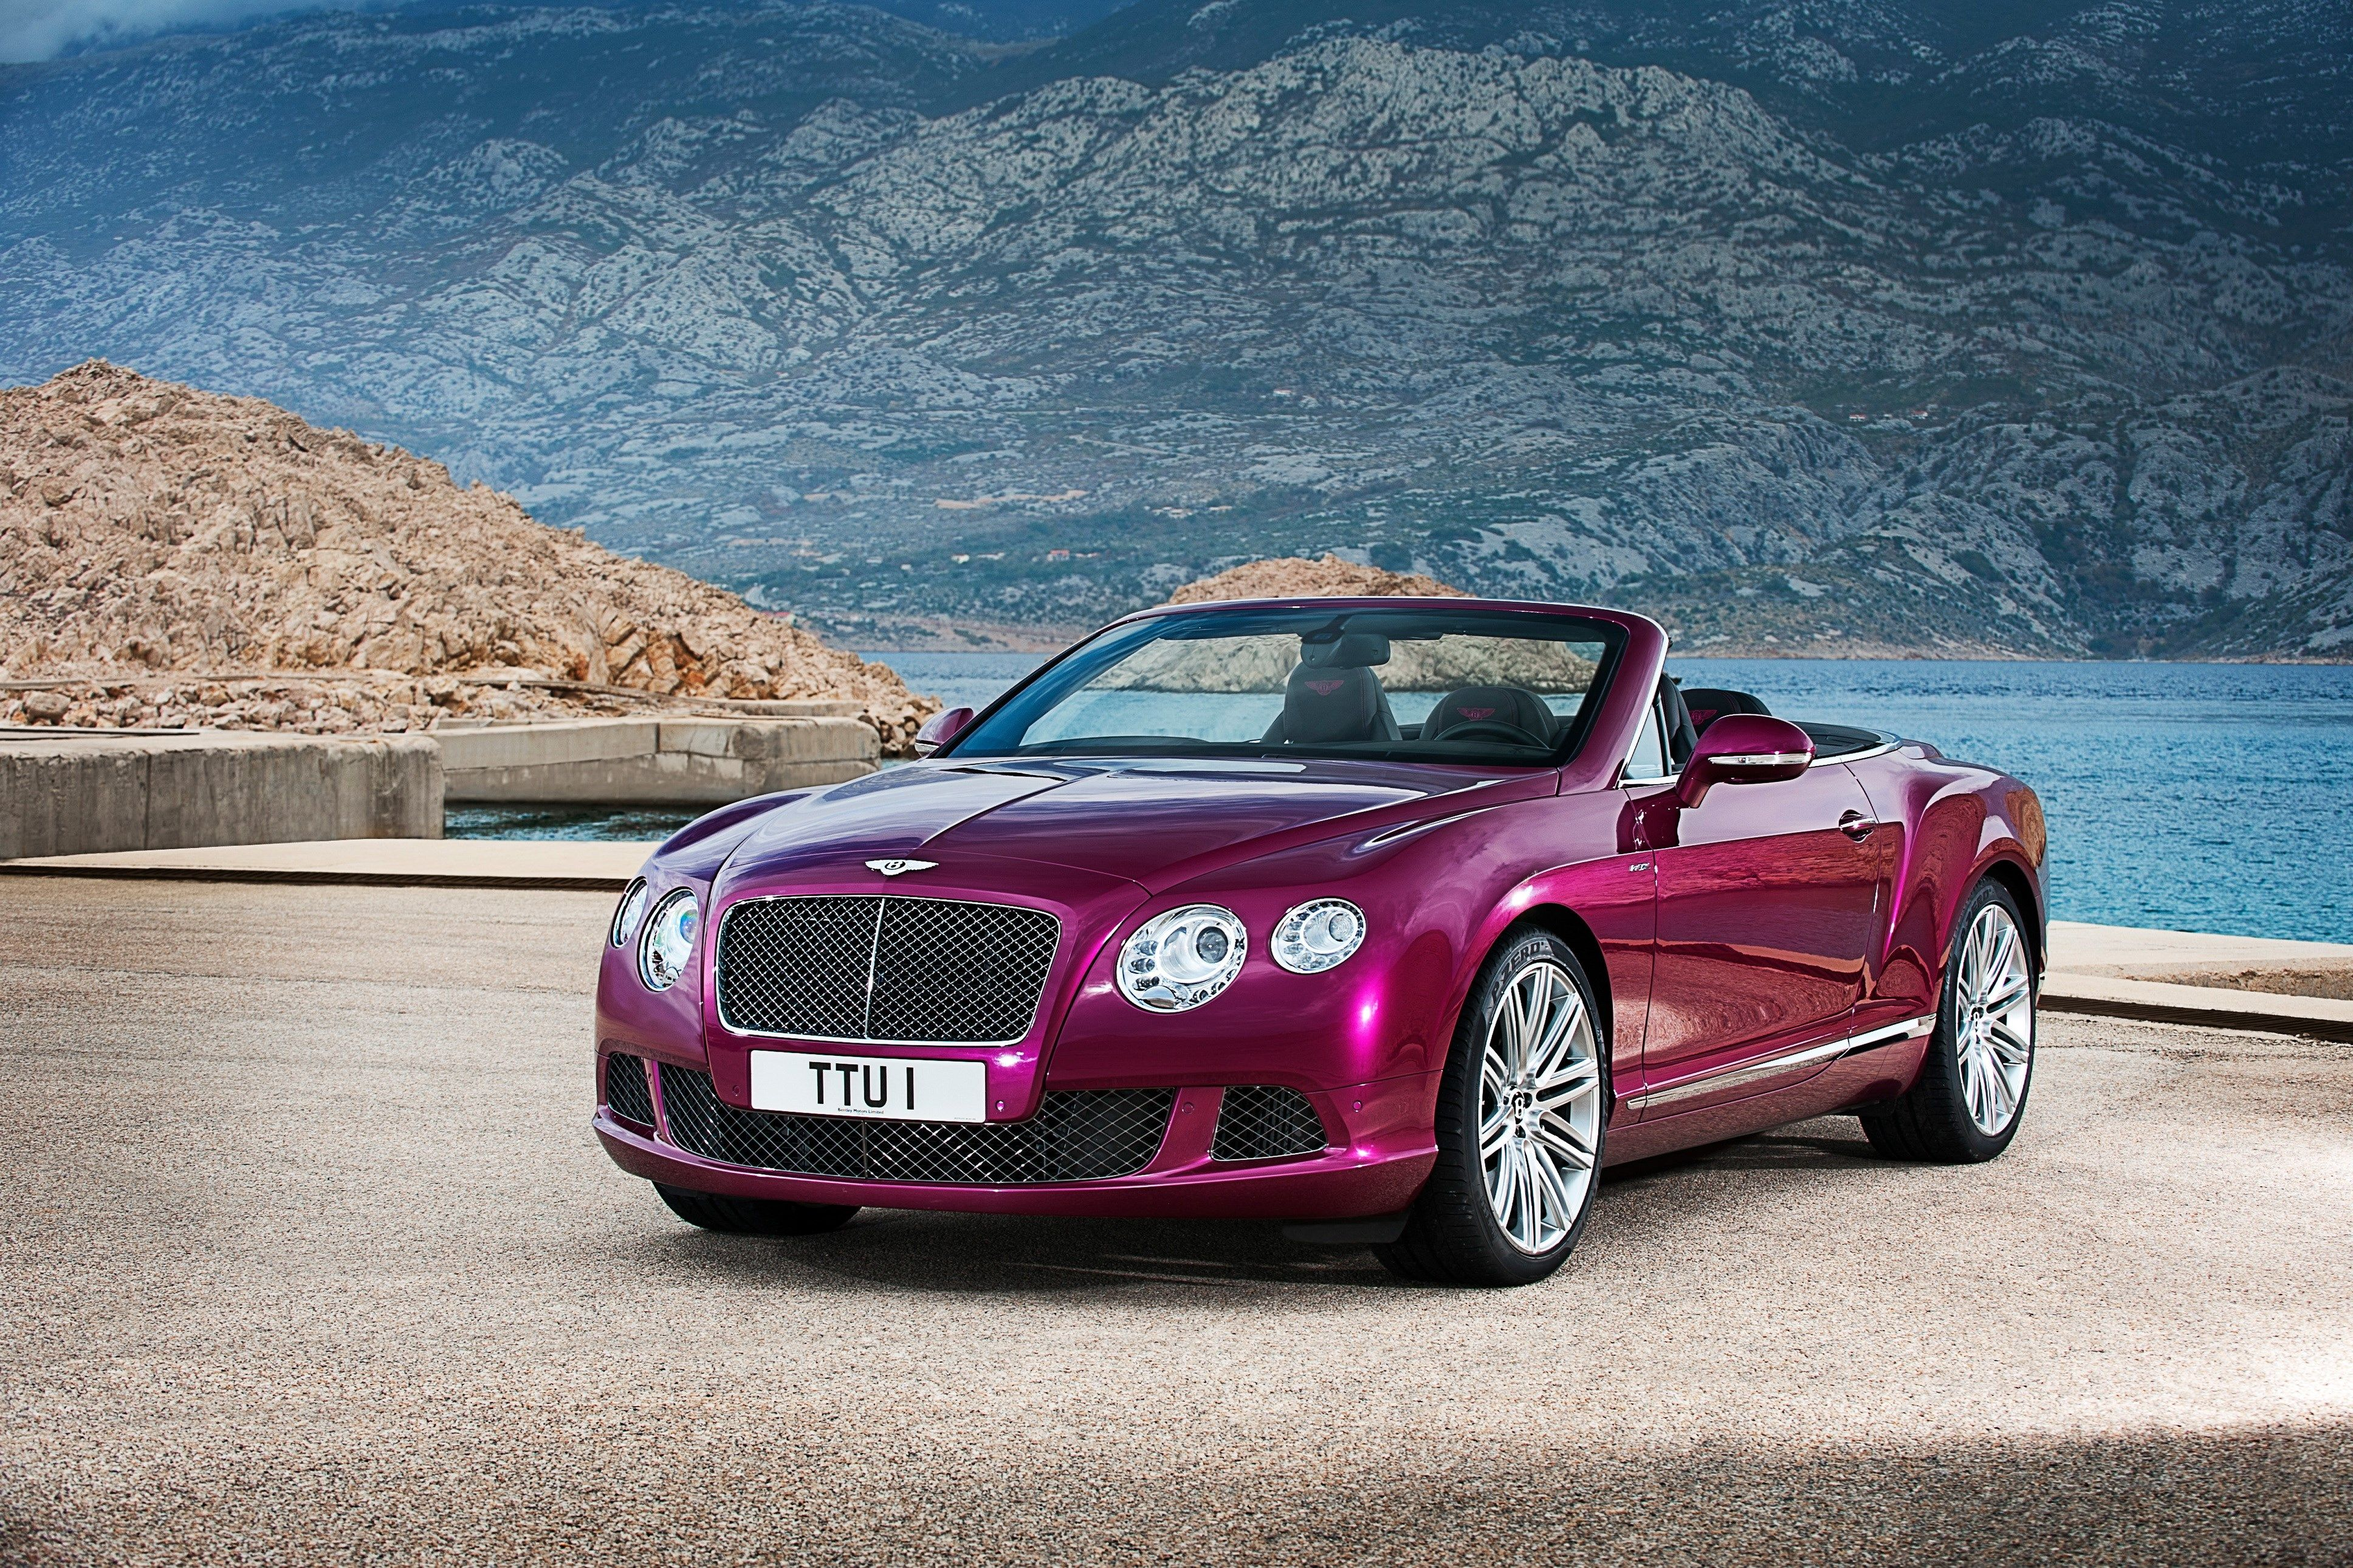 cost gve q speed london vehicles luxury much how a l pre vat does cont gtc owned bentley convertible img